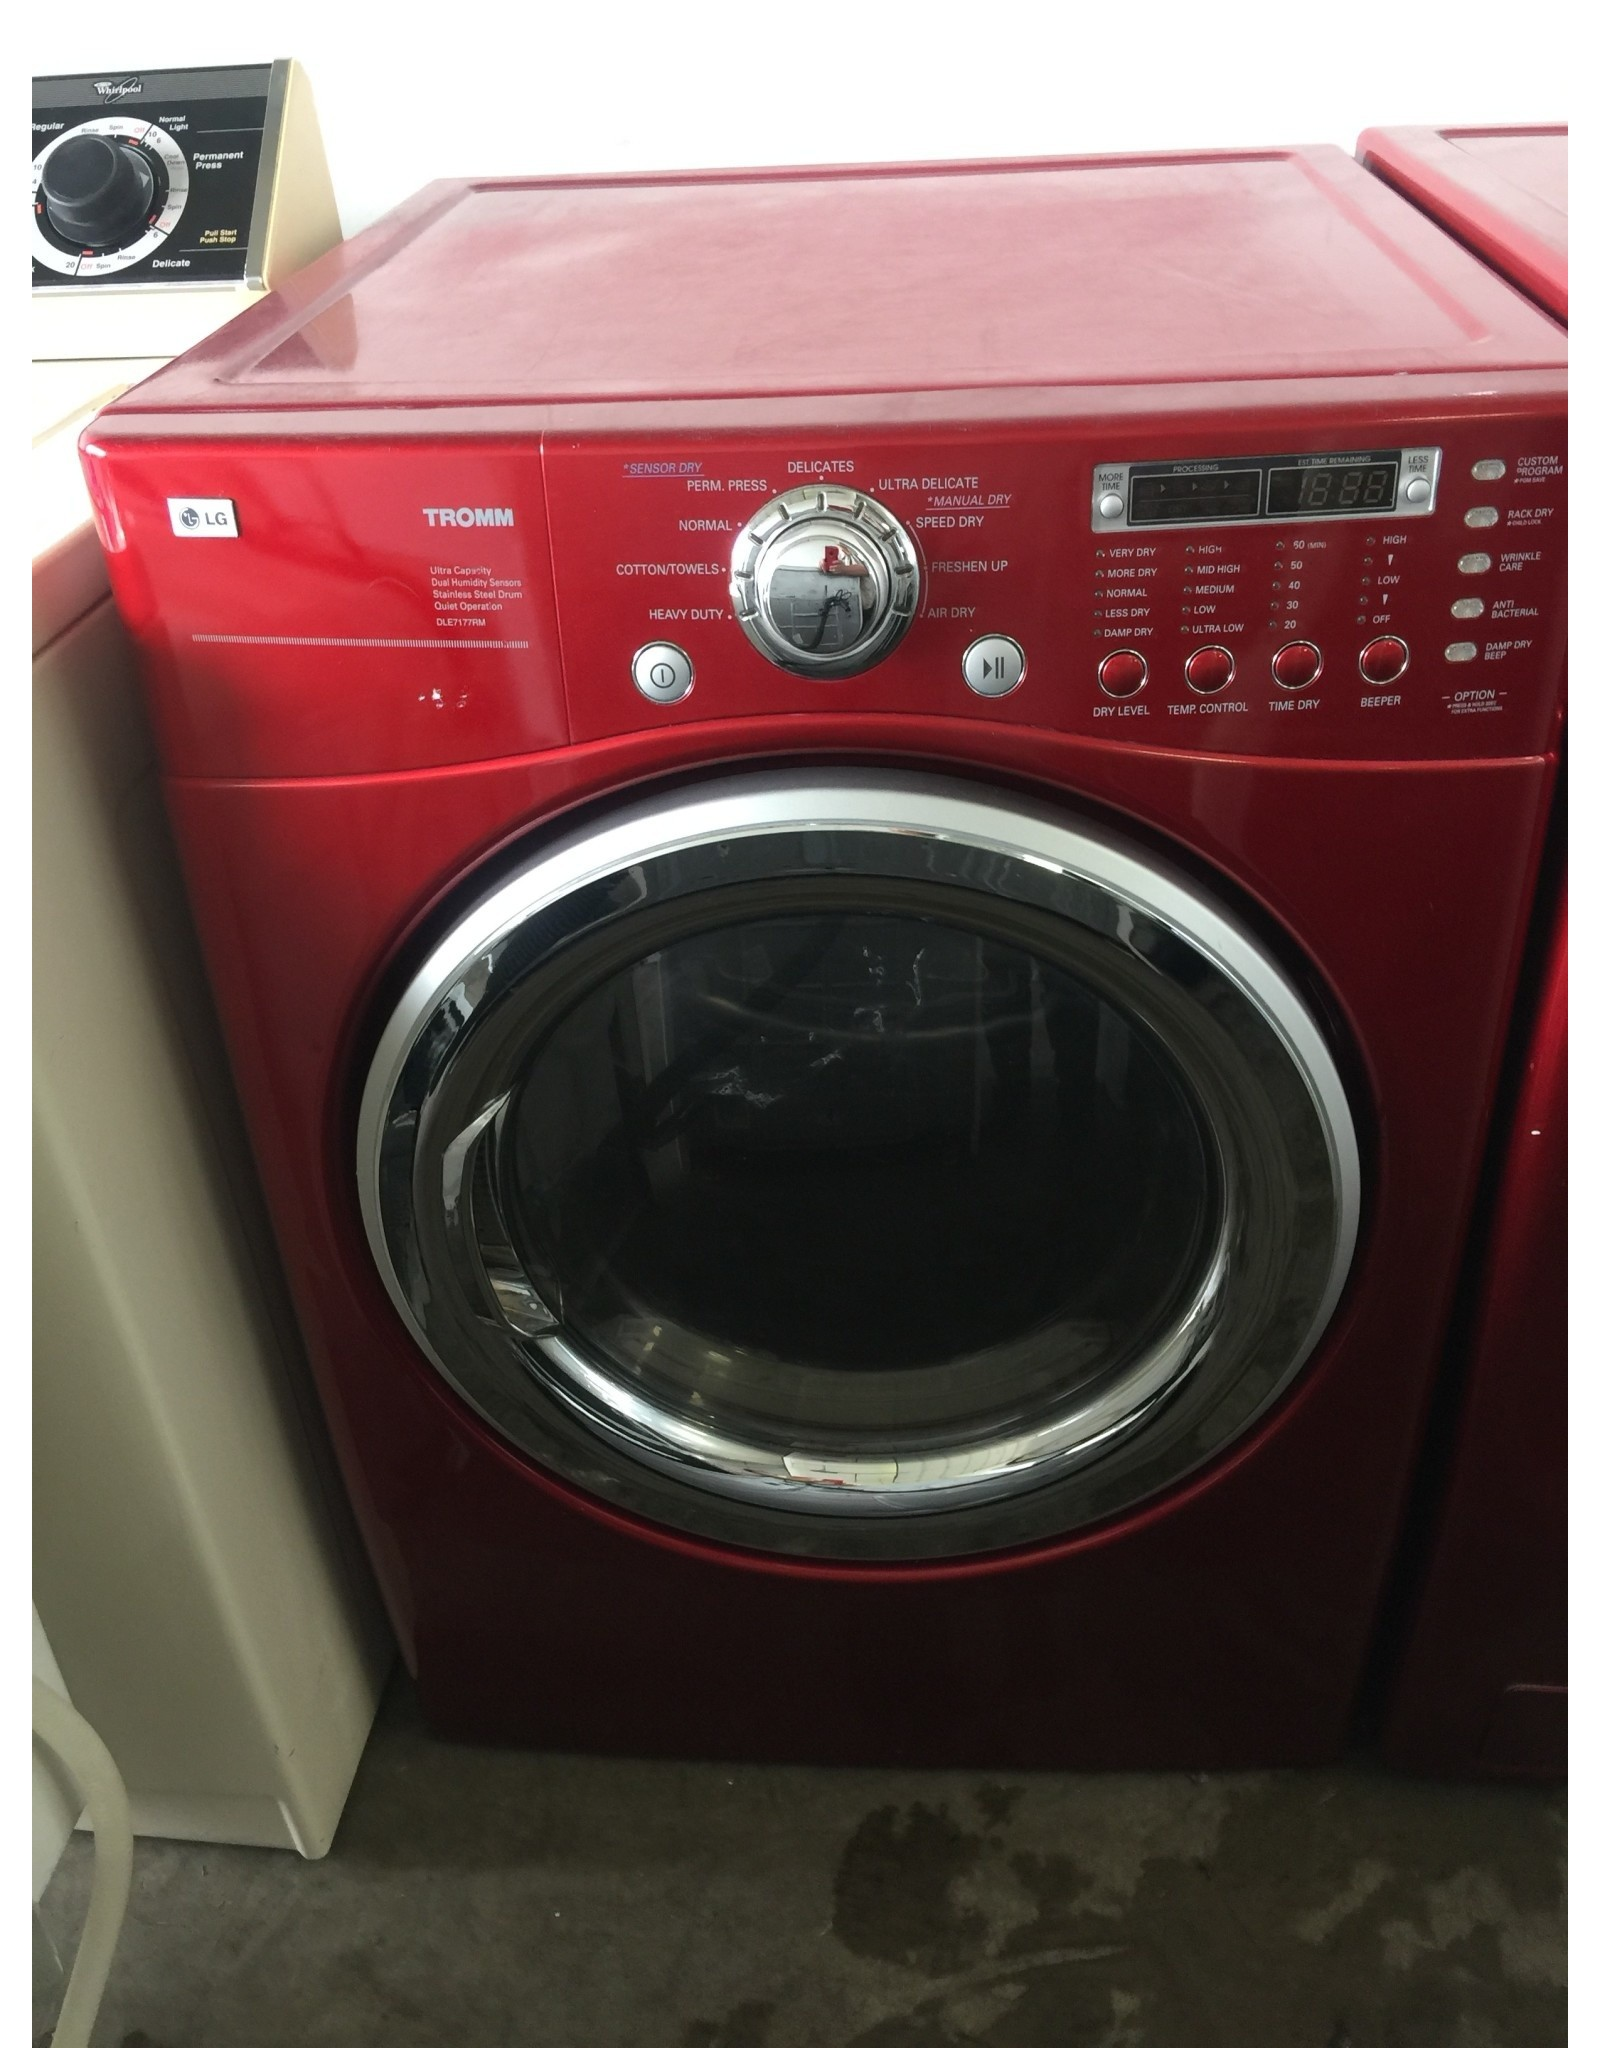 LG LG TROMM FRONT LOAD STEAM DRYER IN RED